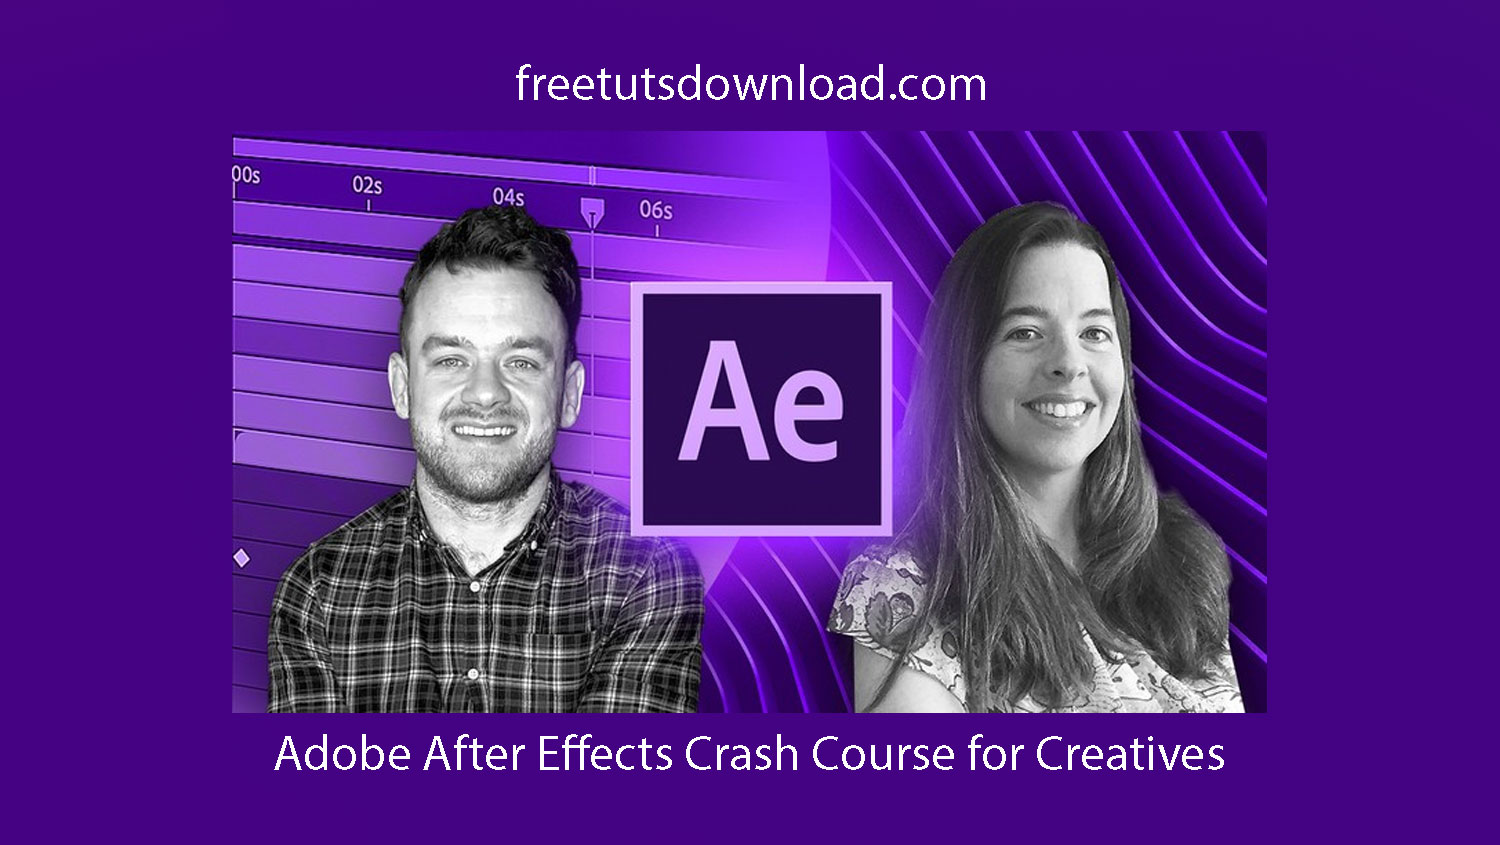 Adobe After Effects Crash Course for Creatives